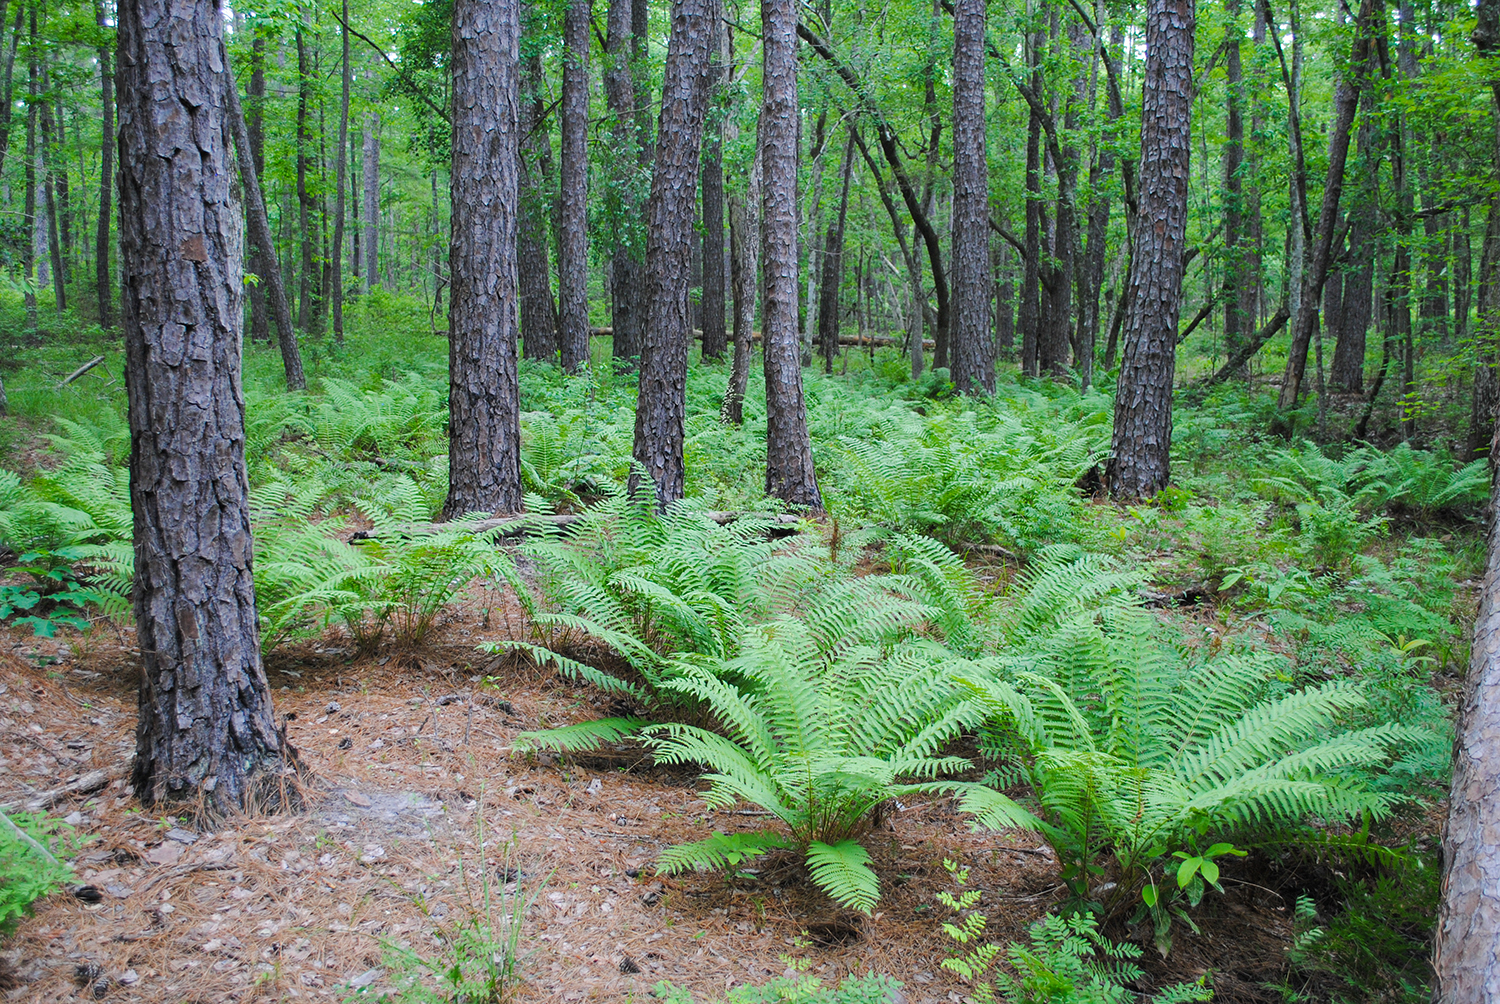 The habitat of a baygall. The understory looks lush from the abundance of  Osmundastrum cinnamomeum  or cinnamon fern.